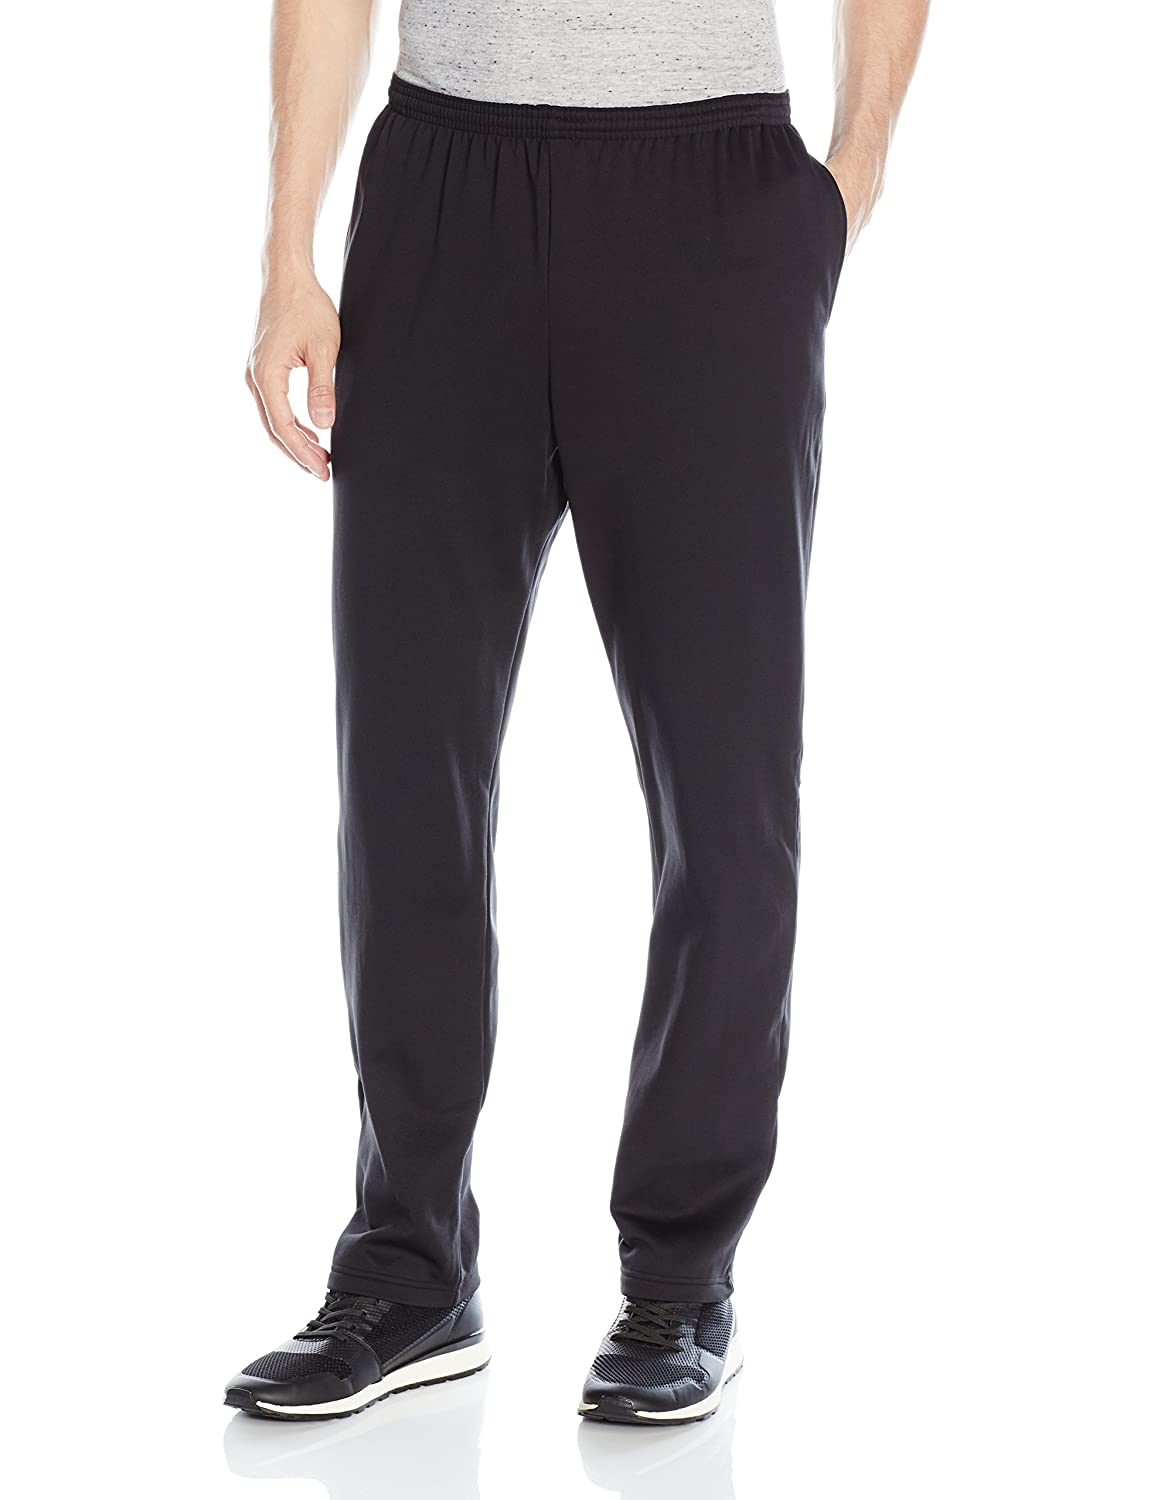 Hanes Mens Sport Performance Sweatpant Pockets O6214